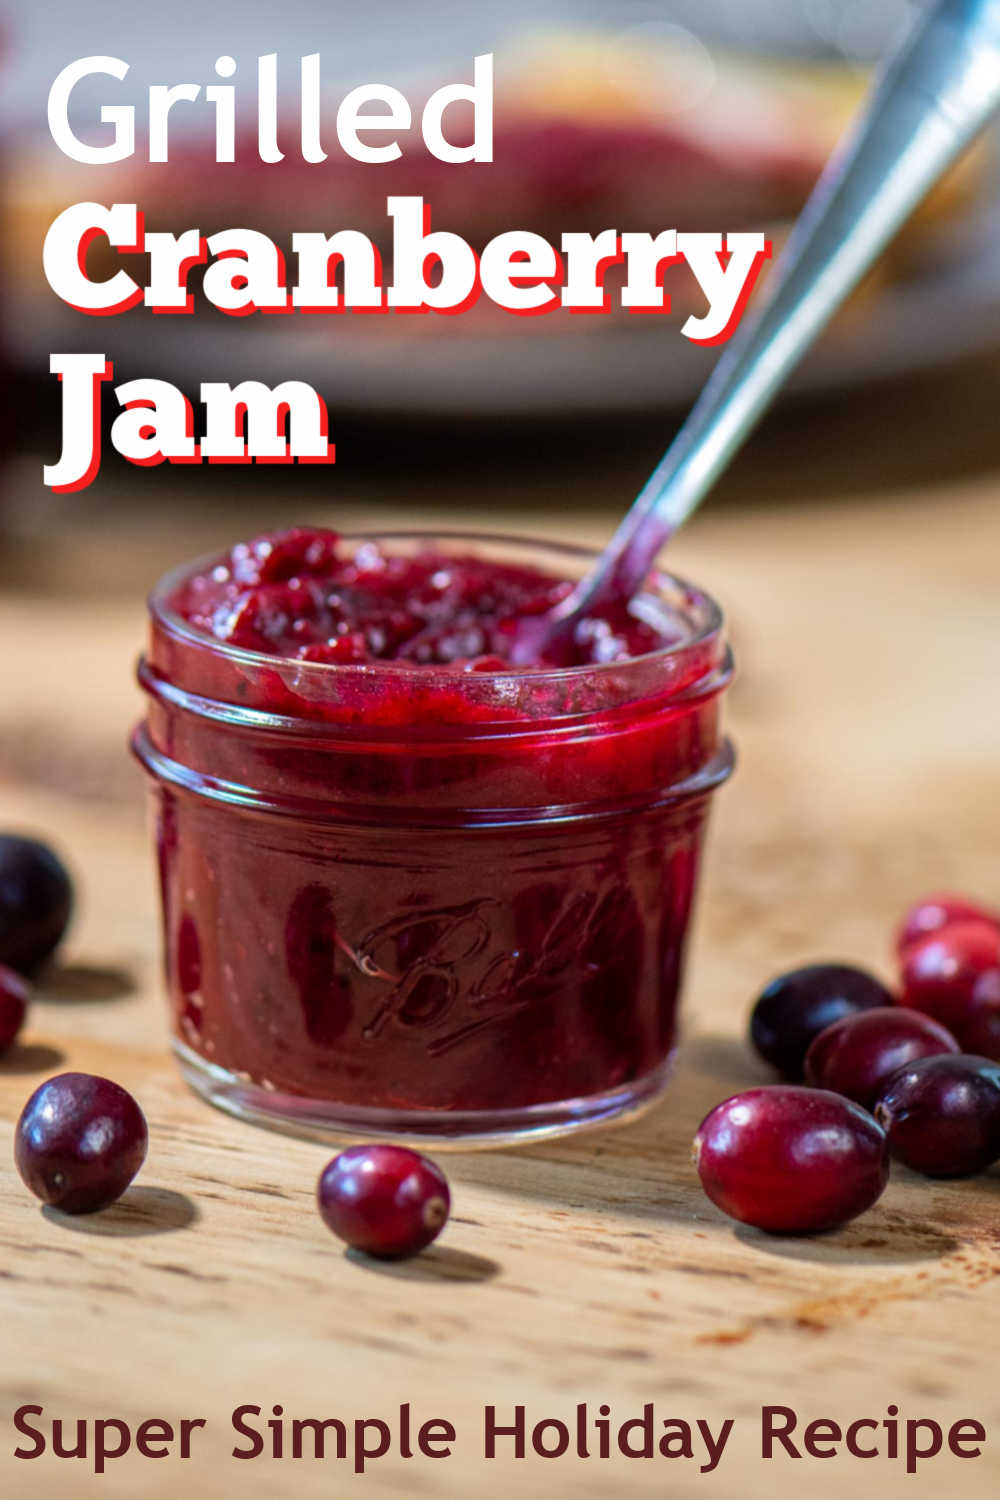 Grilled Cranberry Jam {4 Ingredients}